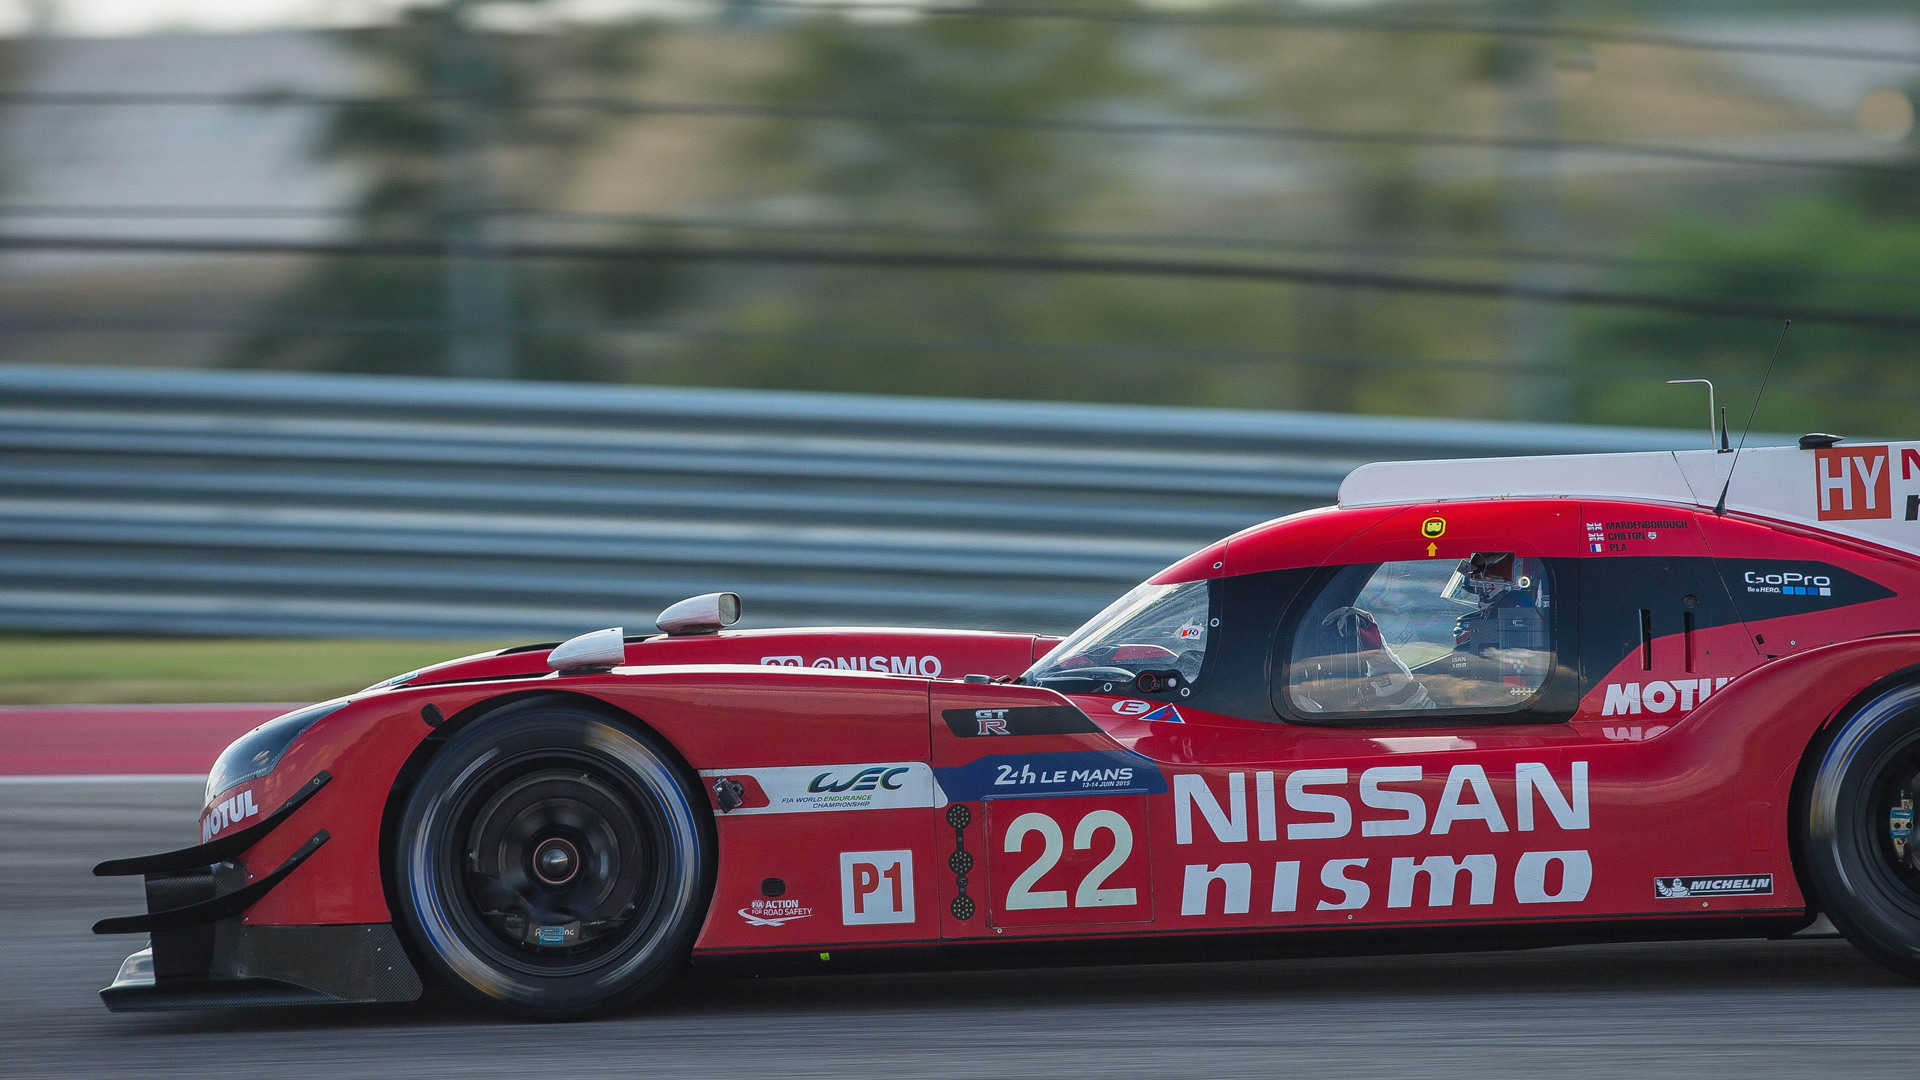 Upgraded 2015 Nissan GT-R LM NISMO LMP1 race car